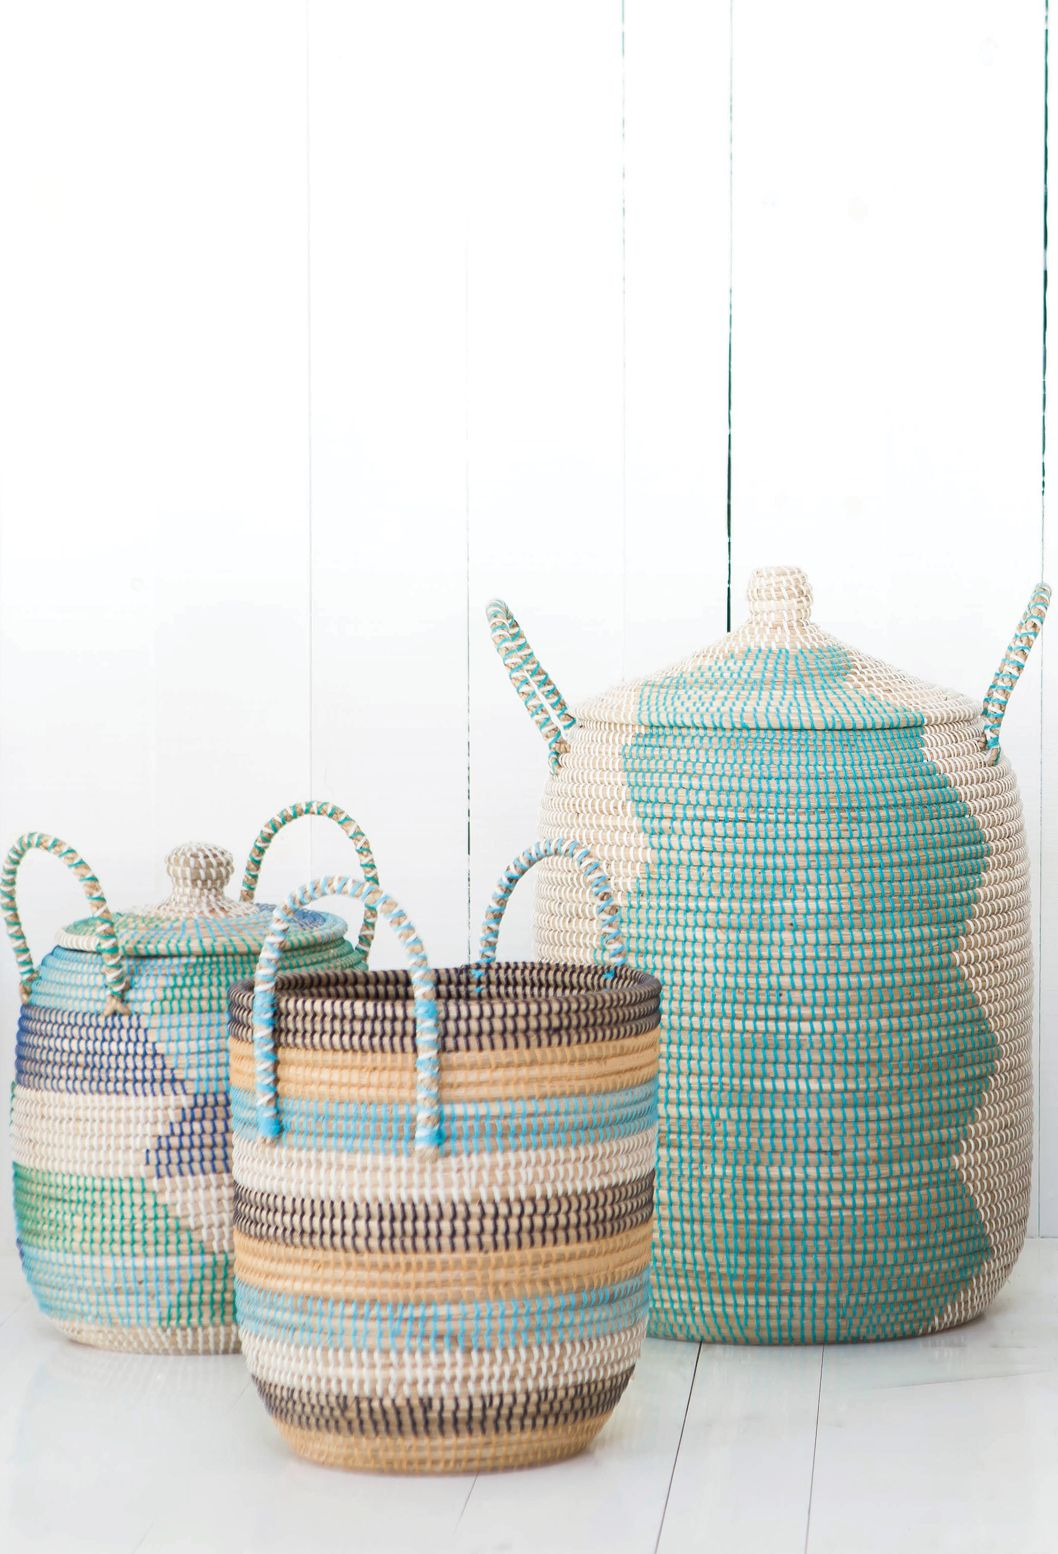 Decorative Laundry Baskets Vietnamese Baskets Handmade From Weylandts